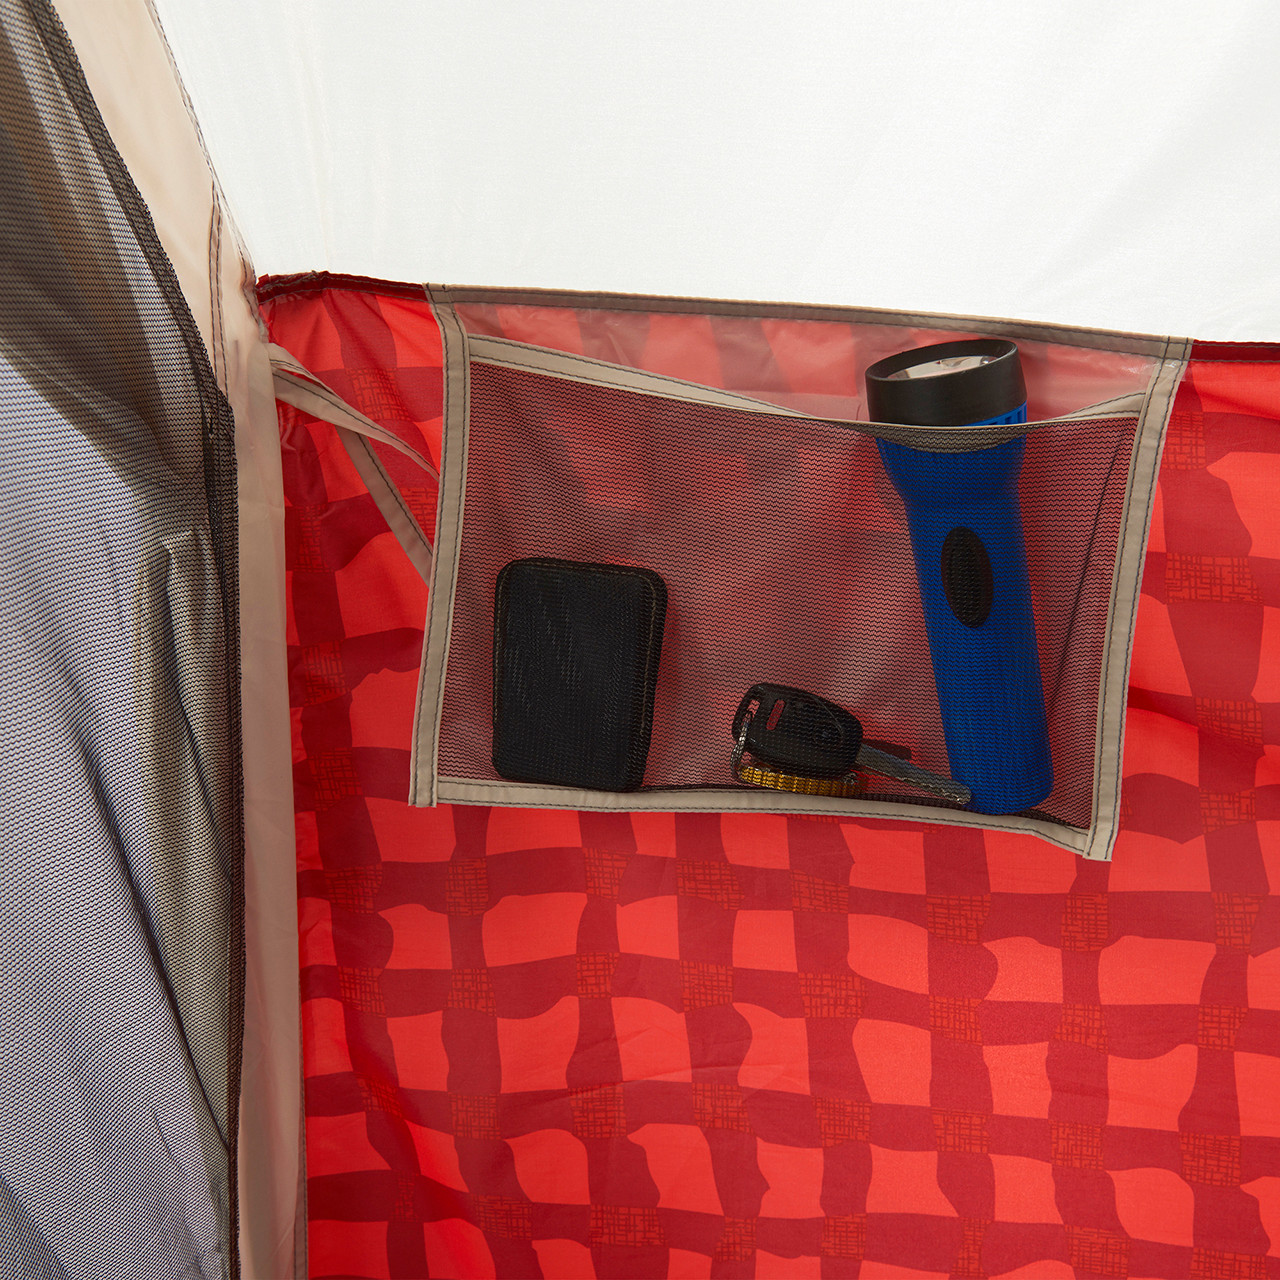 Close up view of an interior mesh pocket in the Wenzel Ivanhoe 6 tent storing a flashlight, keys, and a wallet